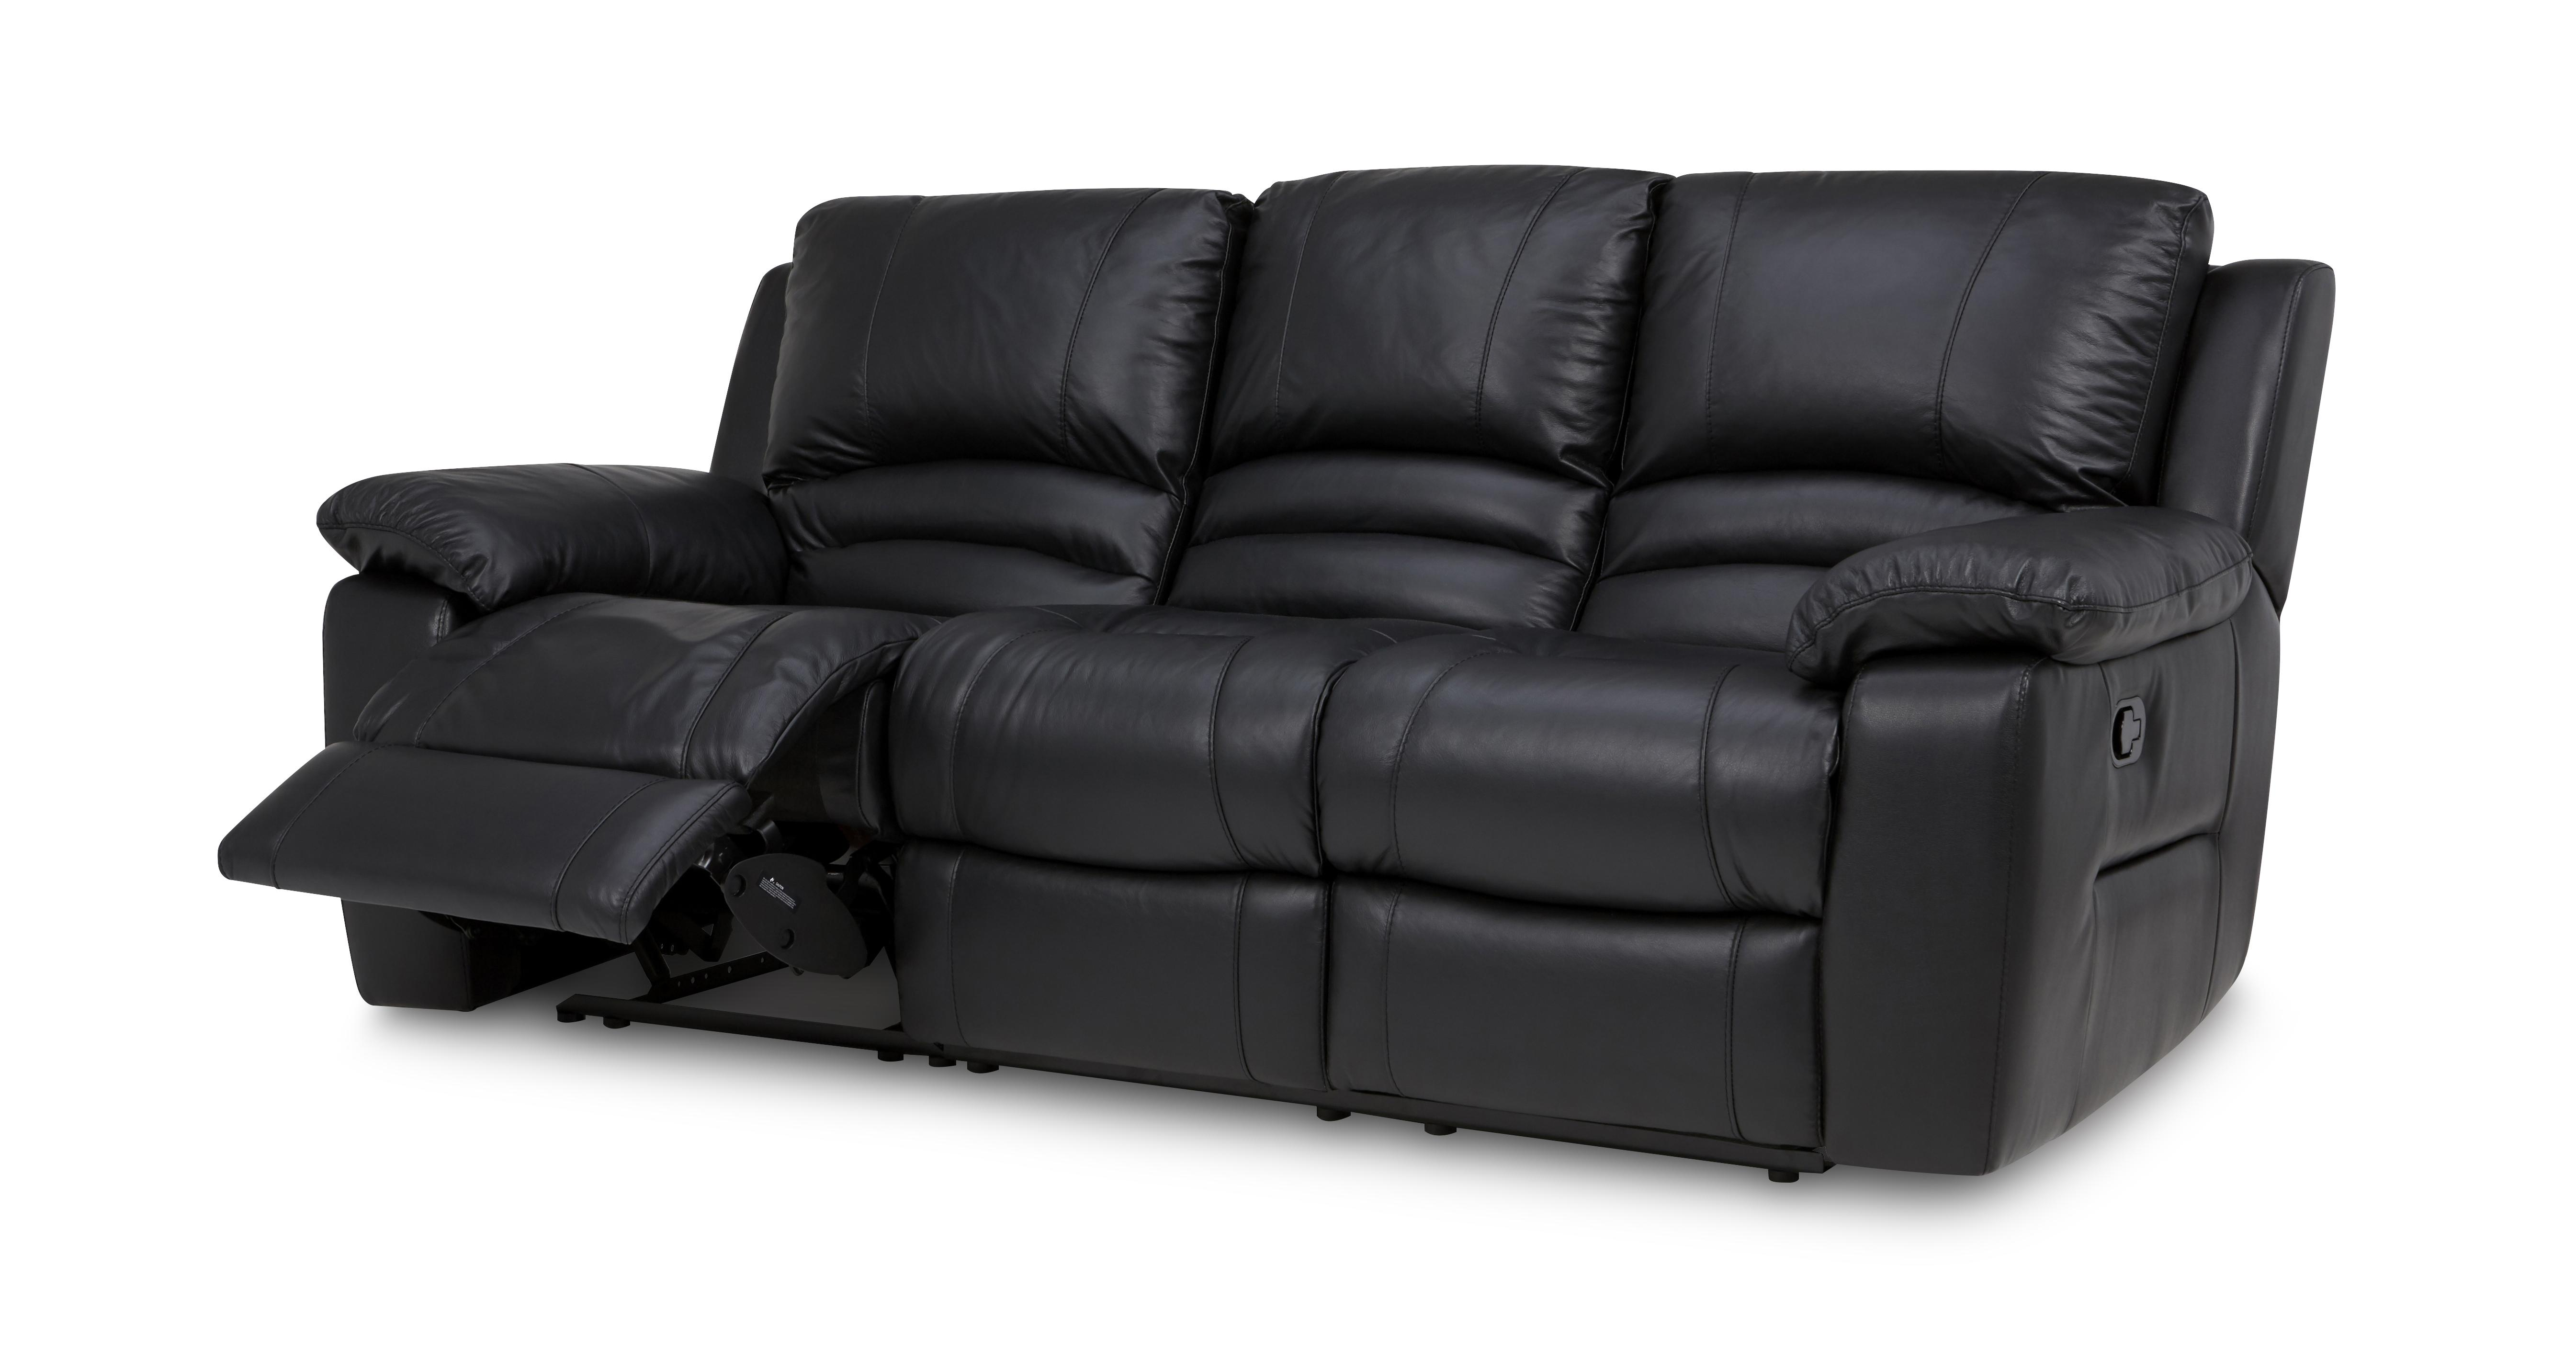 Guild 3 Seater Manual Recliner Premium Dfs ~ Black Leather Sofa Chair